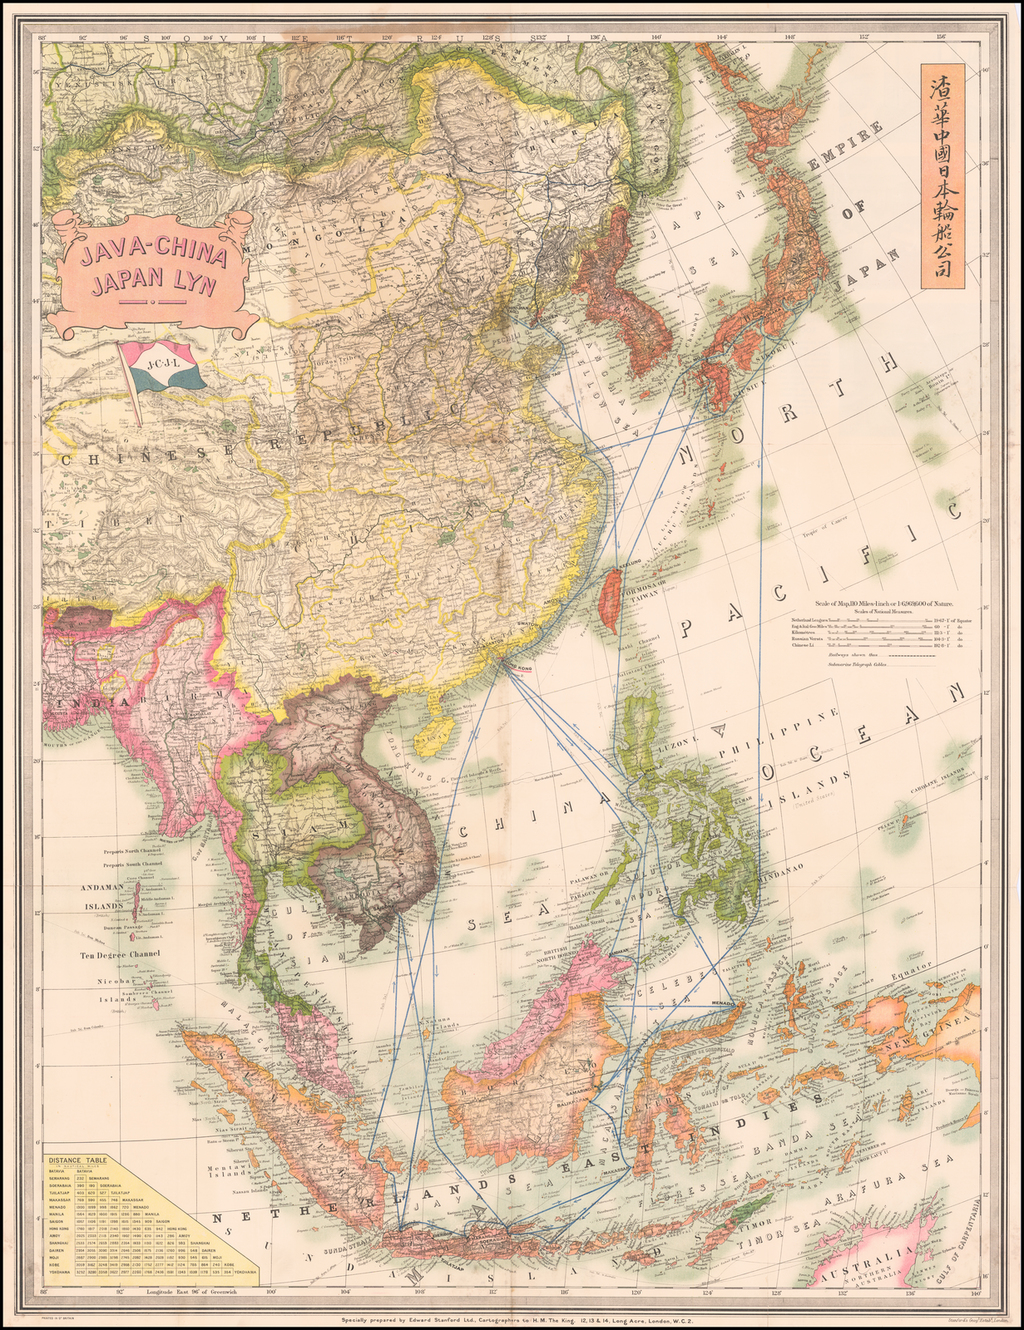 Java-China Japan Lyn (Map Showing Routes Ports of Call and Services of the Java-China Japan Line By Edward Stanford